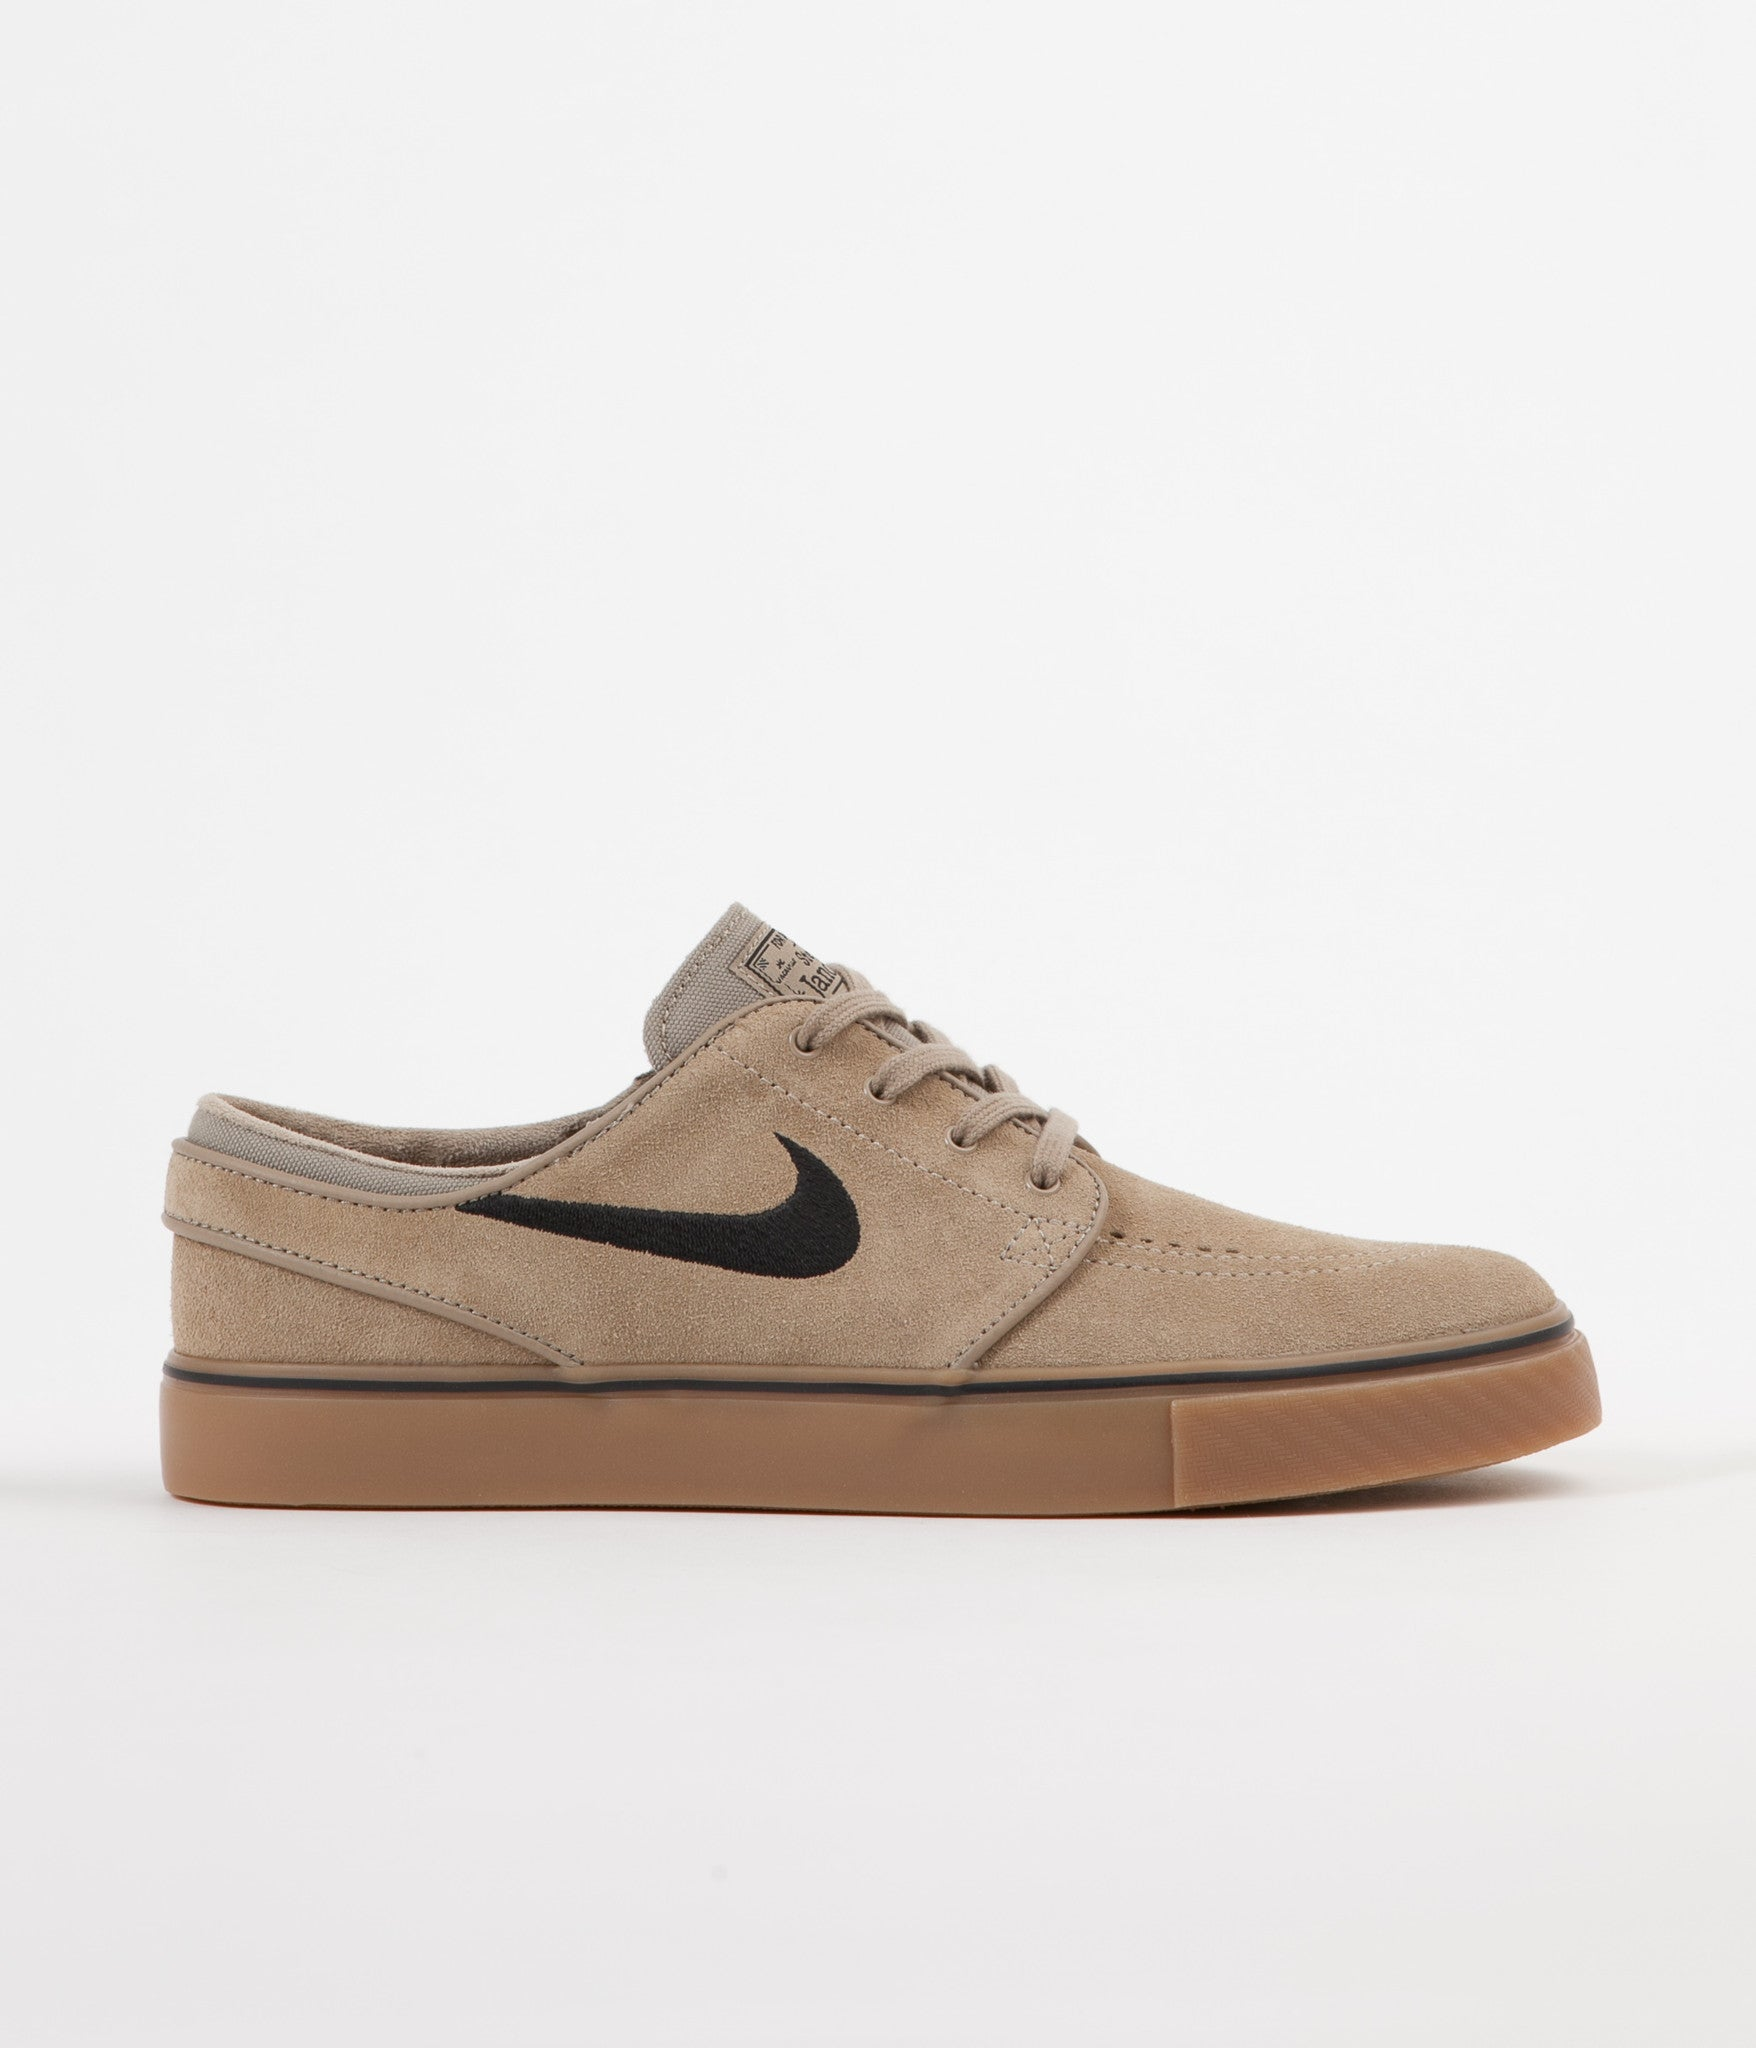 nike sb stefan janoski shoes khaki black gum light brown flatspot. Black Bedroom Furniture Sets. Home Design Ideas